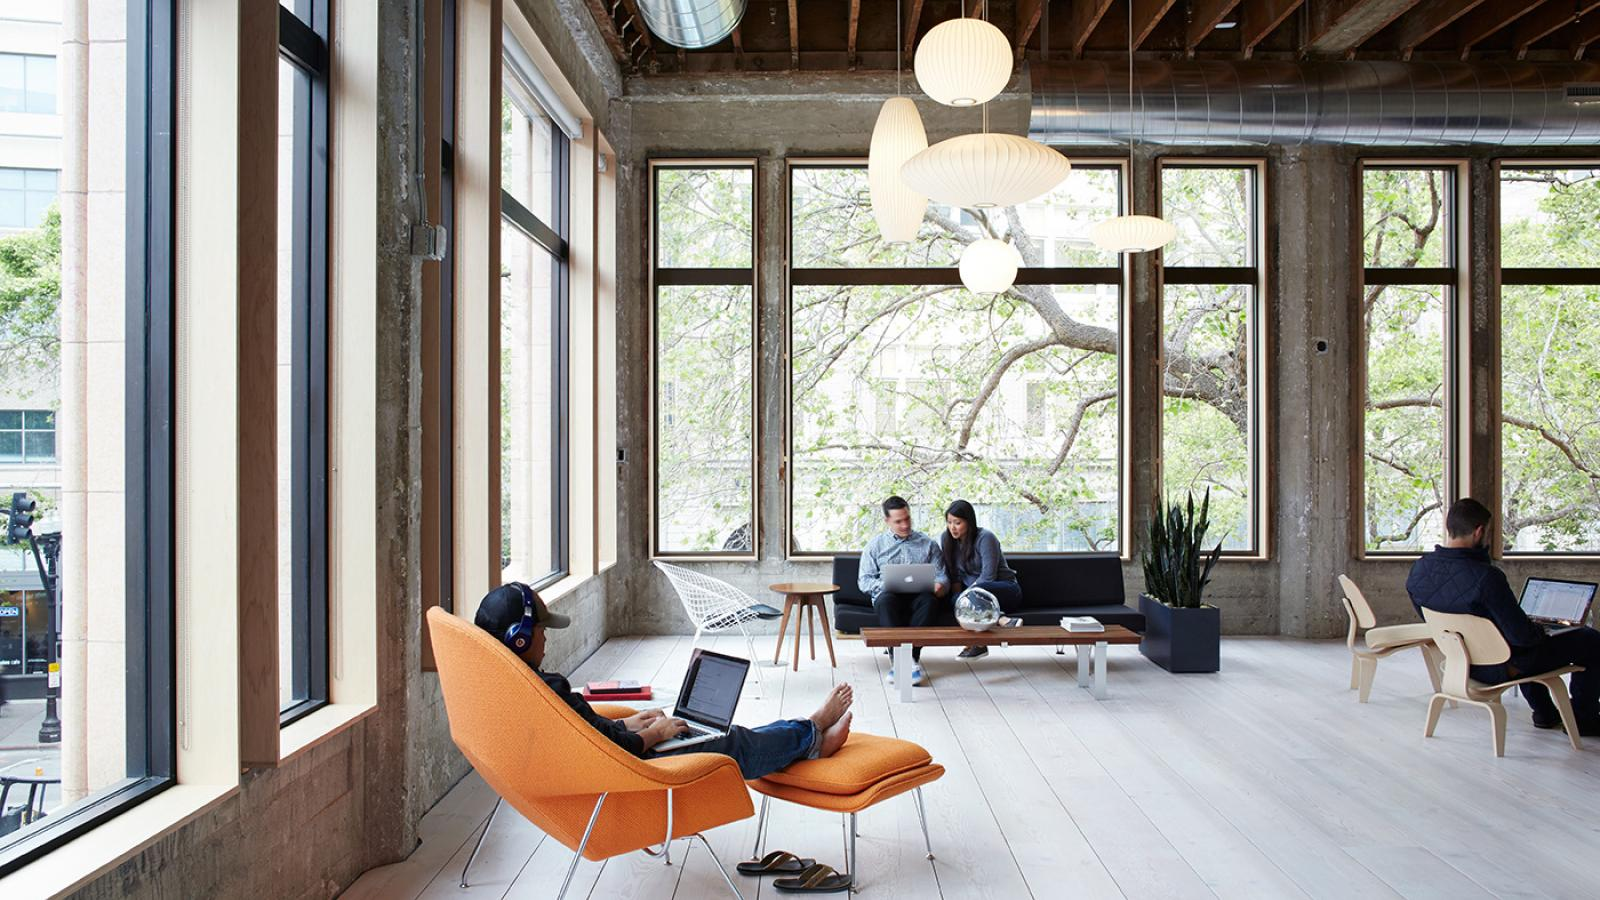 Inside the Offices of VSCO Oakland